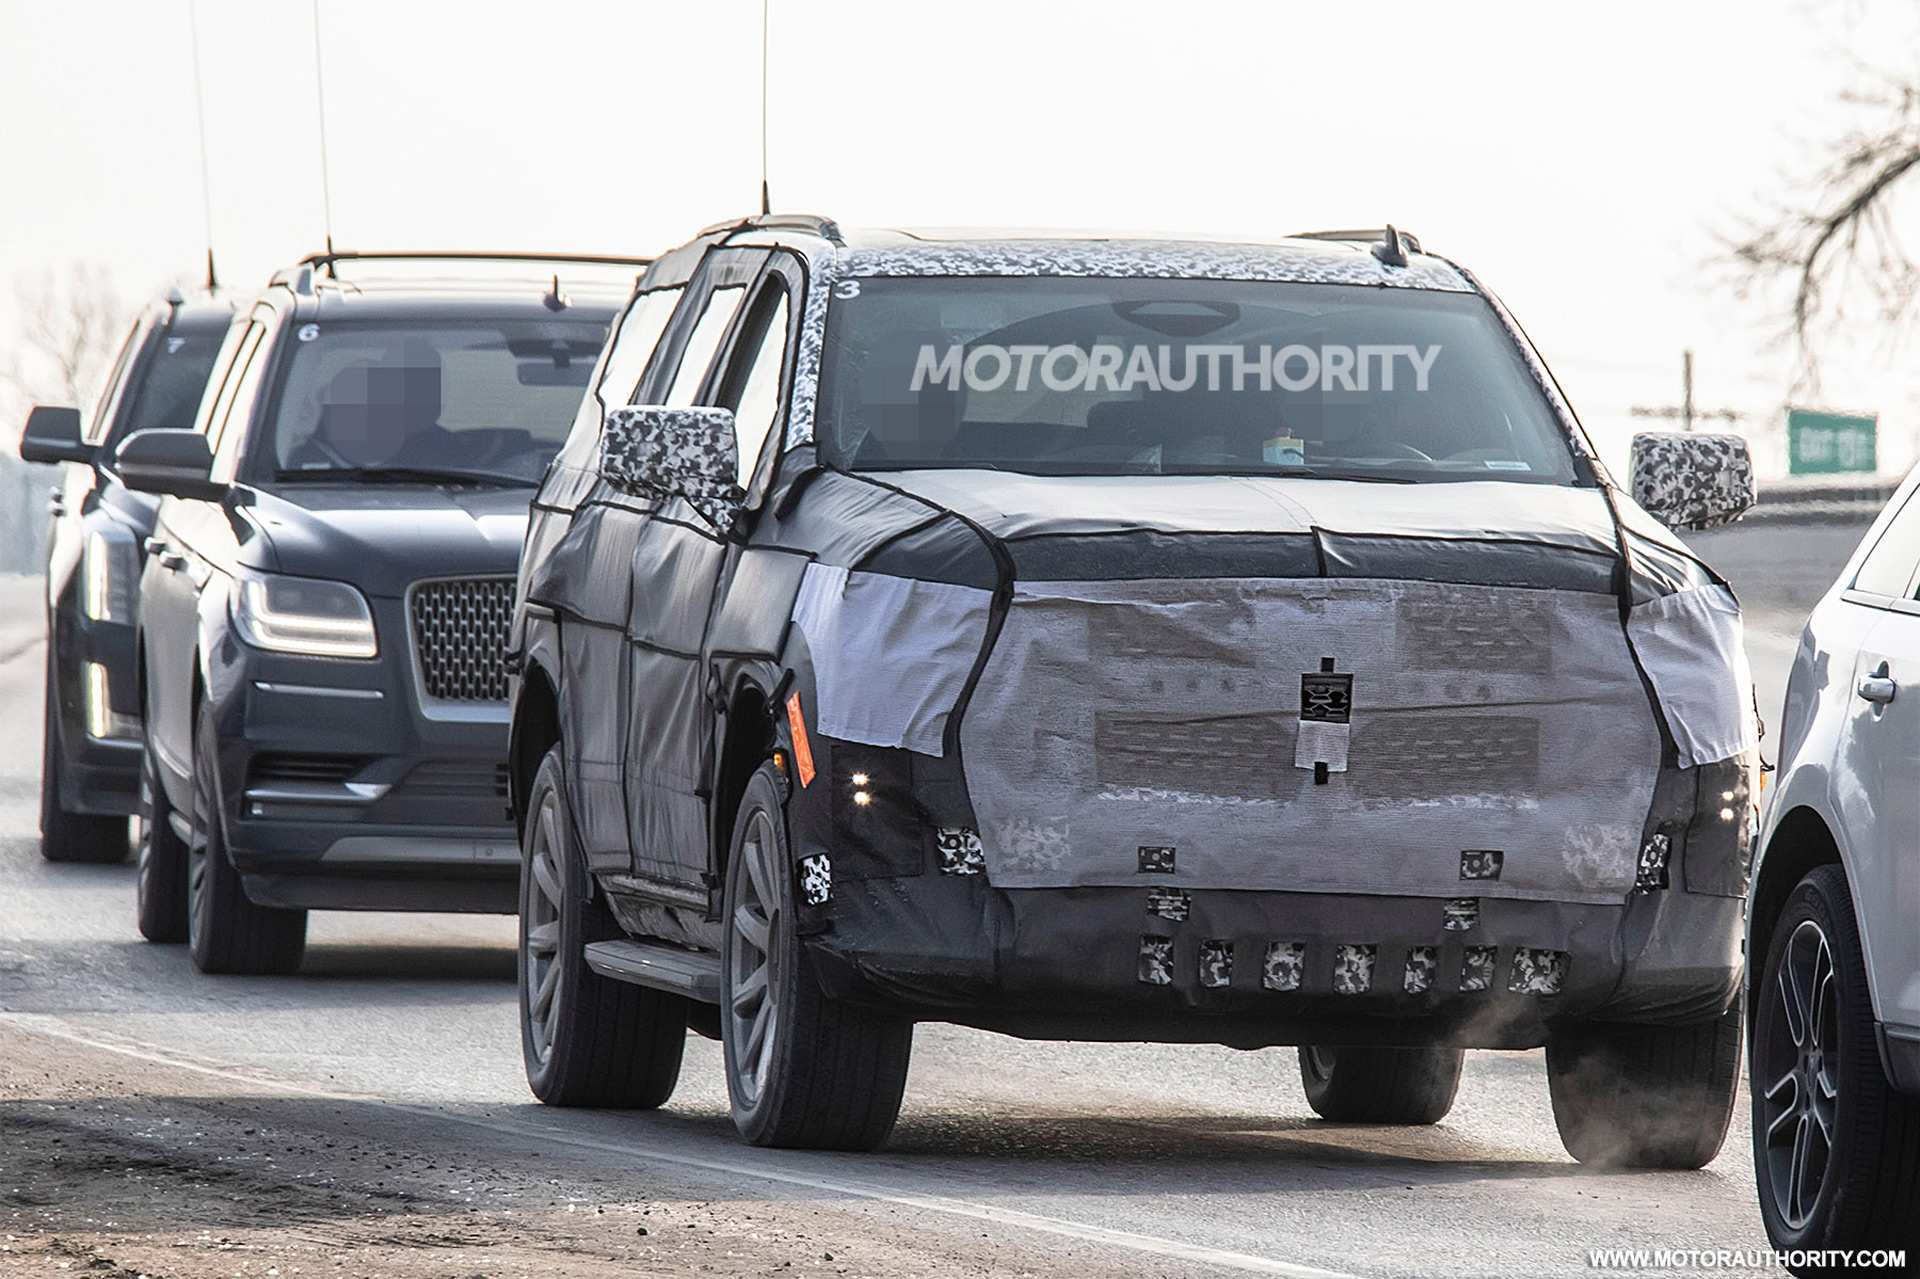 45 All New 2020 Cadillac Escalade Images Redesign And Concept